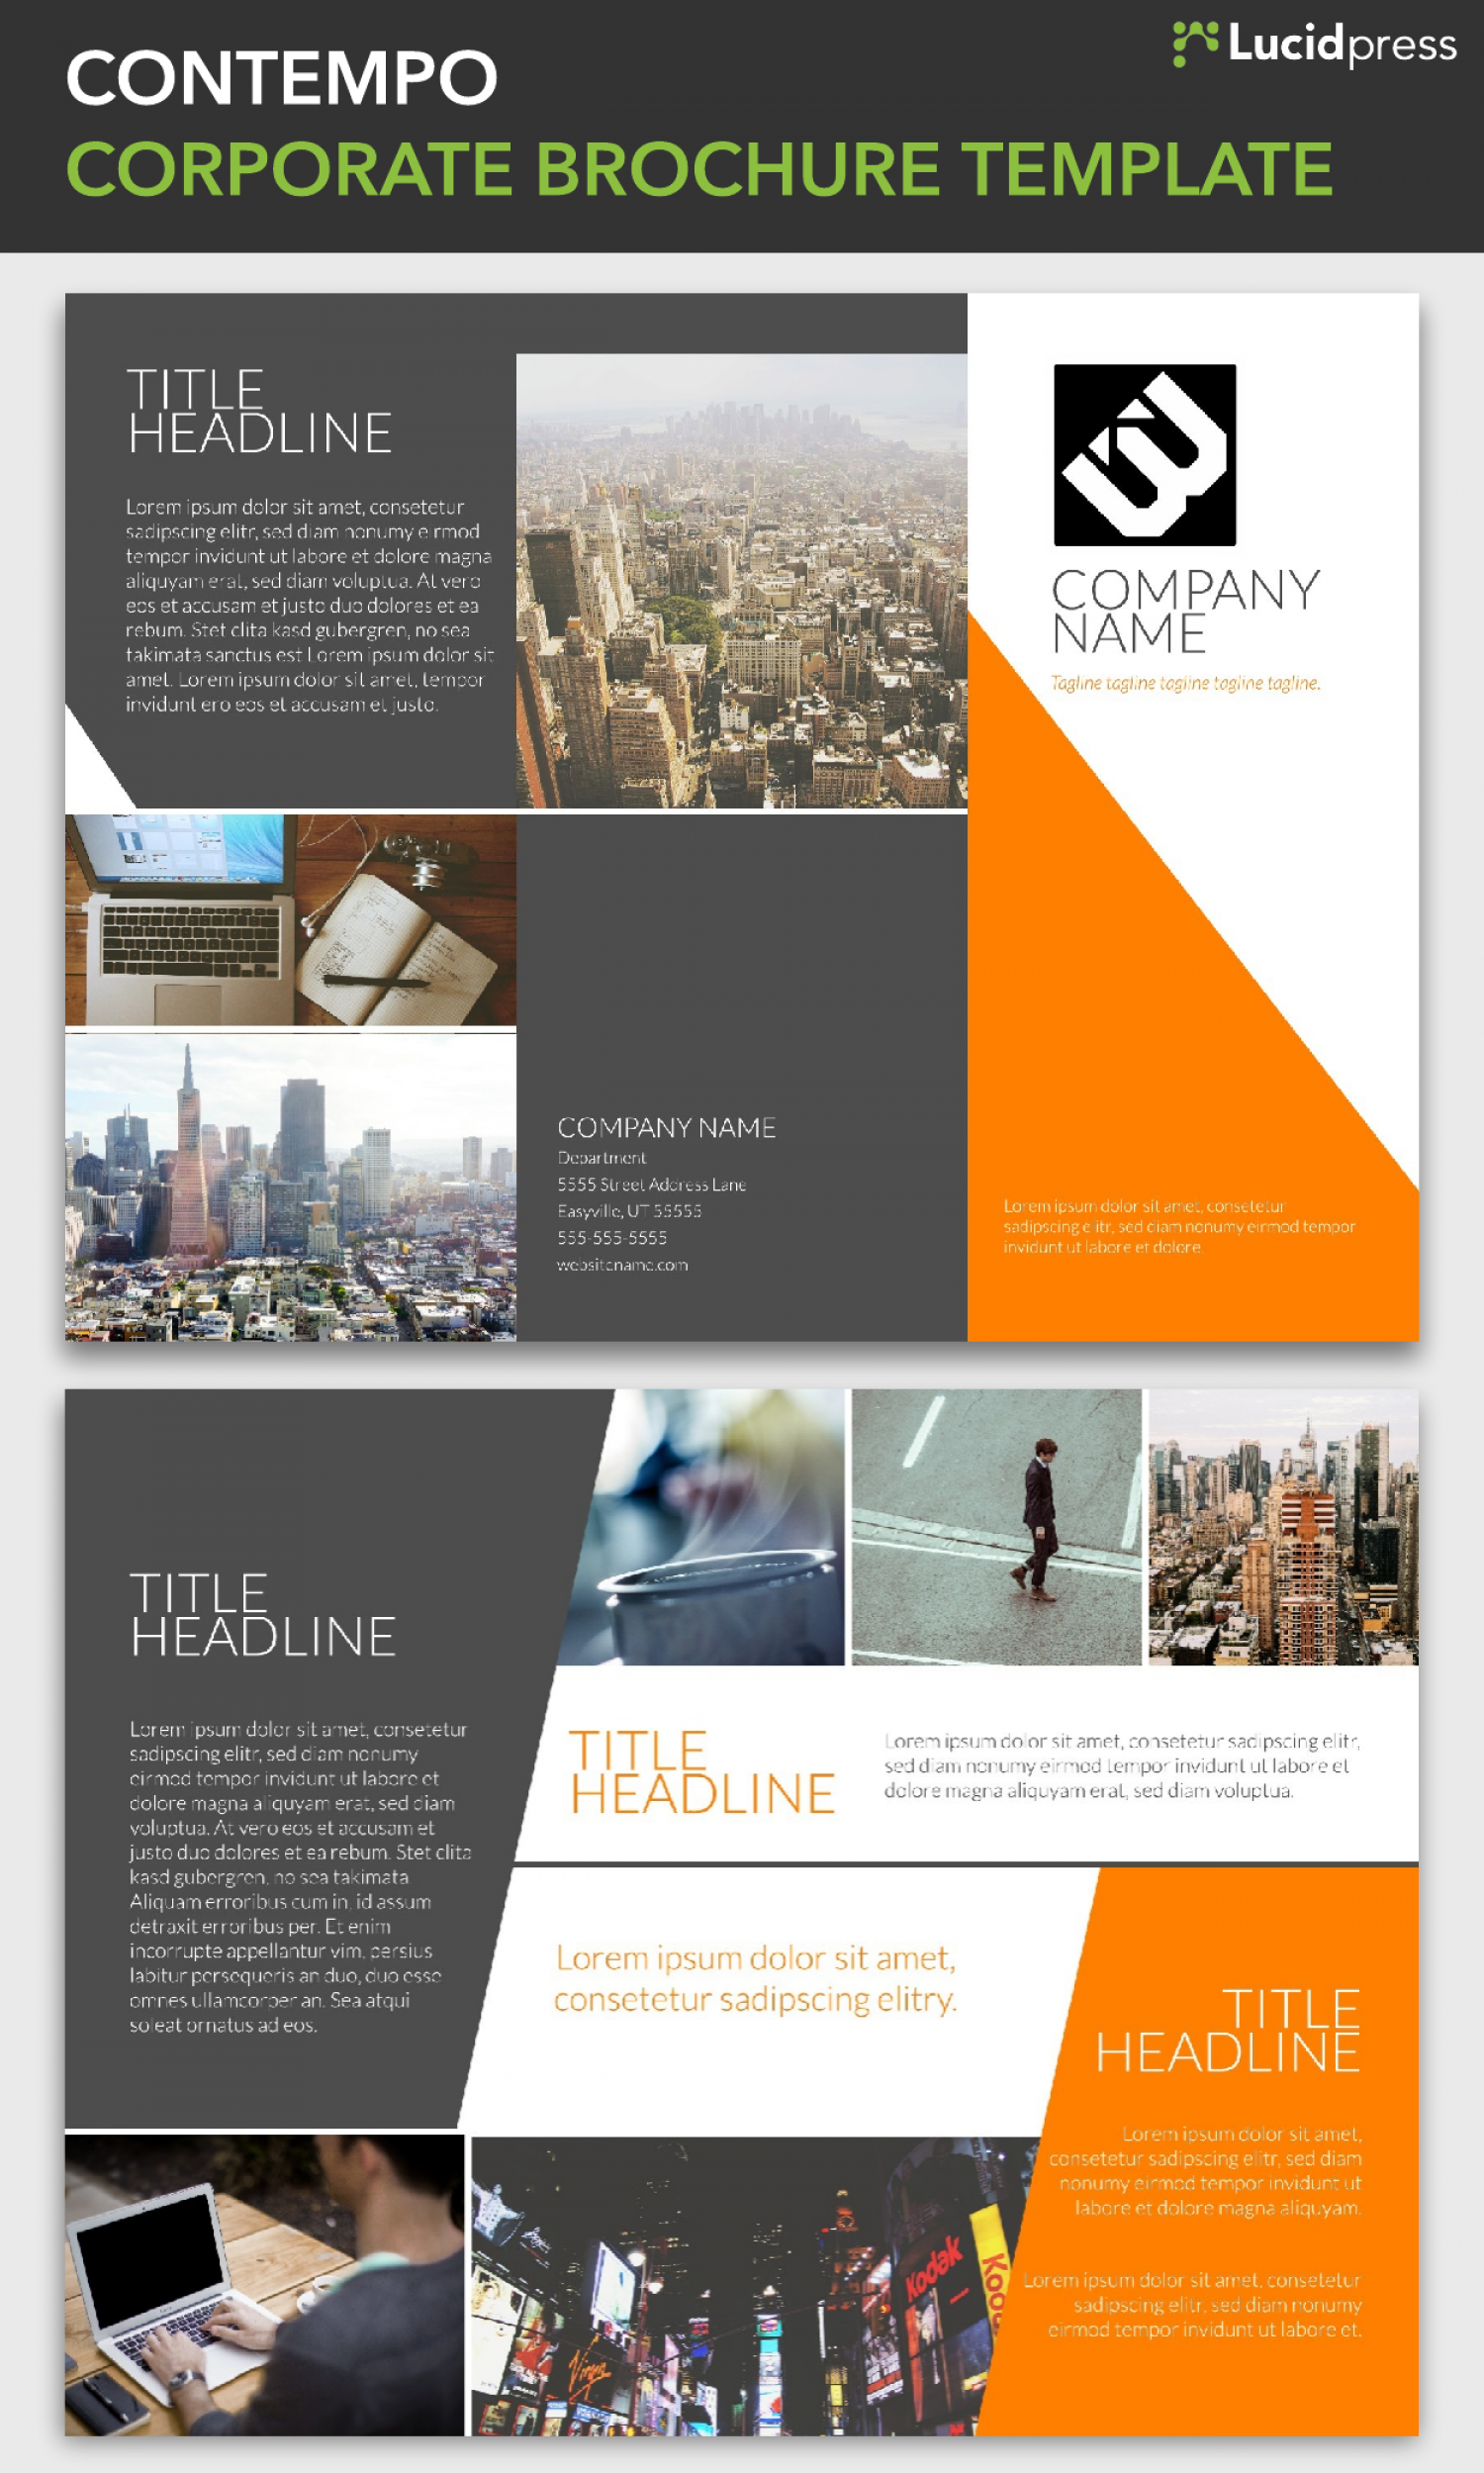 company brochure template - corporate brochure template lucidpress